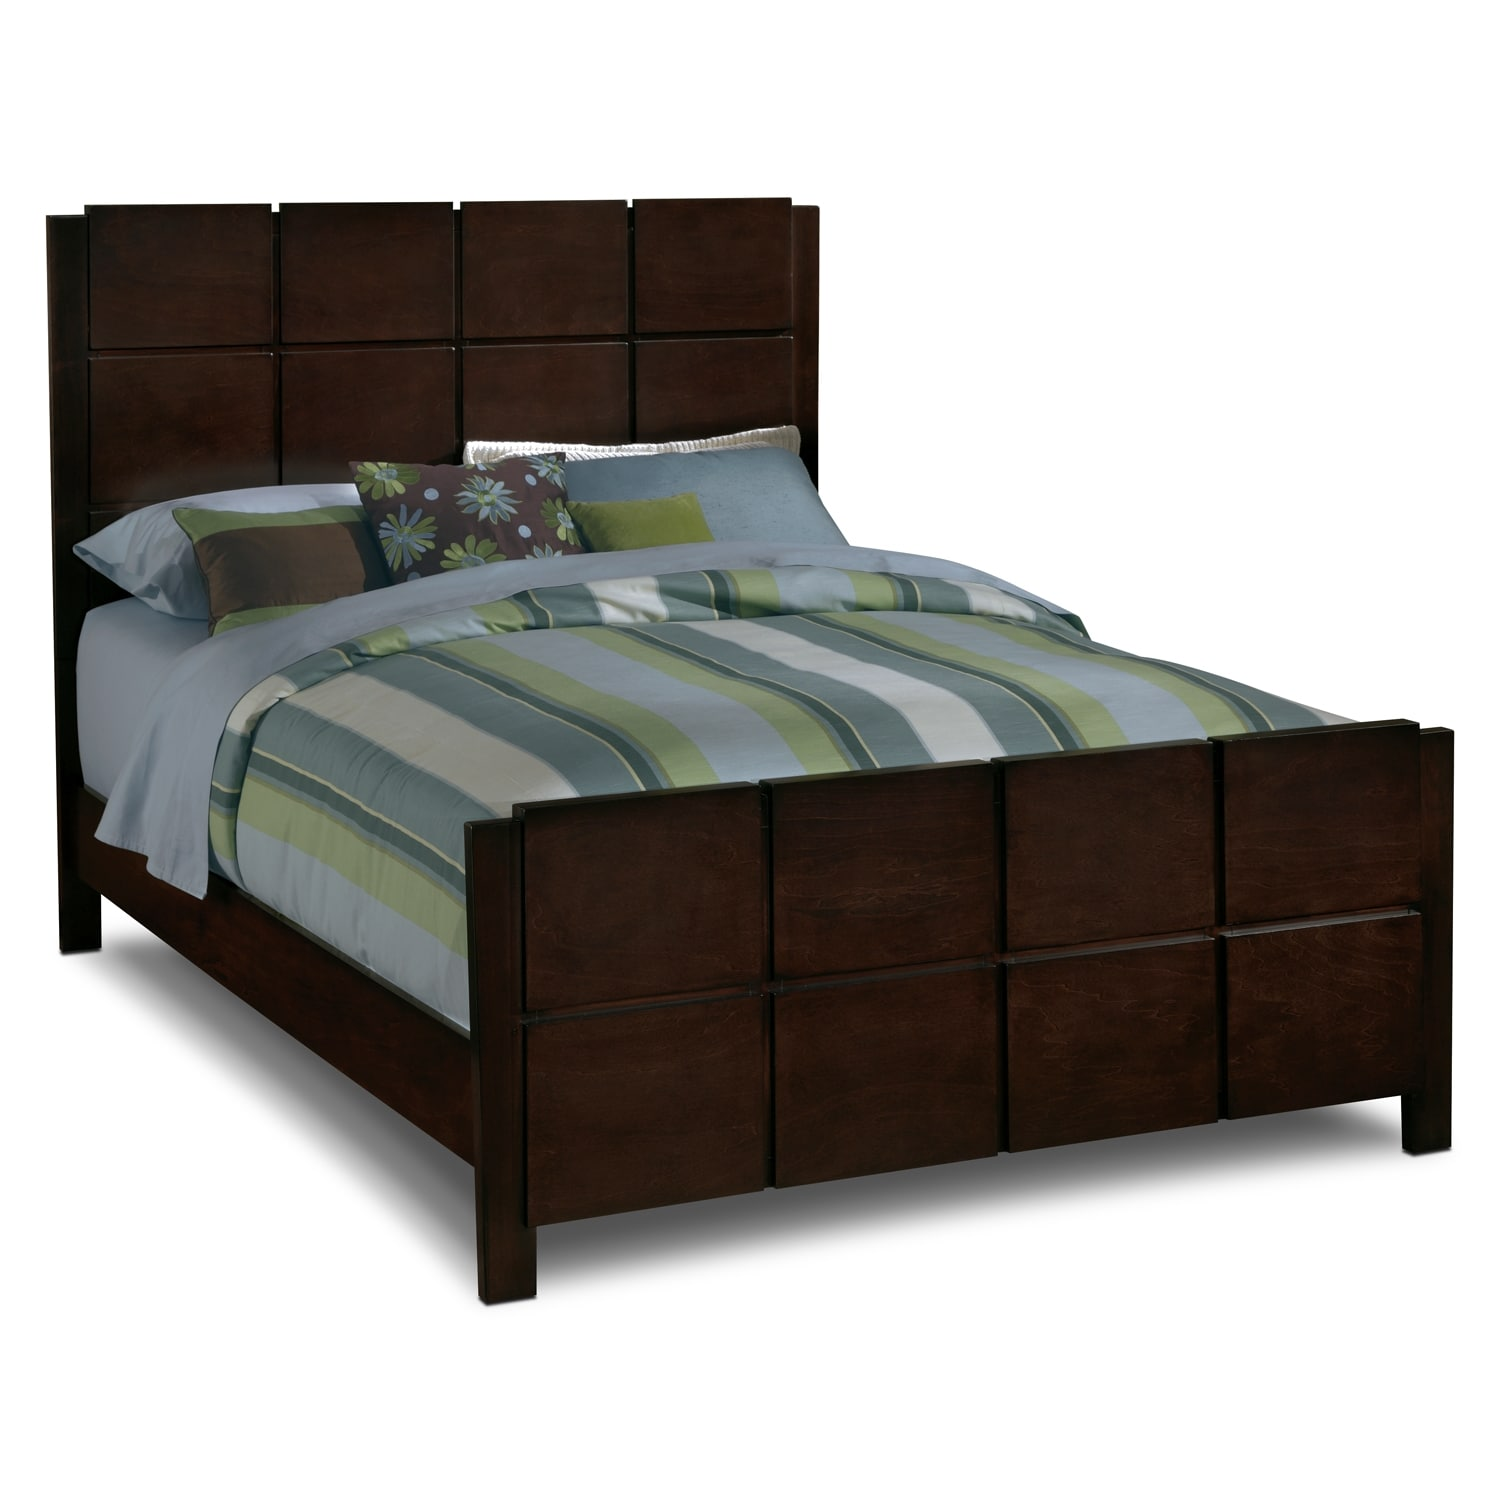 Mosaic 5 Piece Queen Bedroom Set Dark Brown Value City Furniture